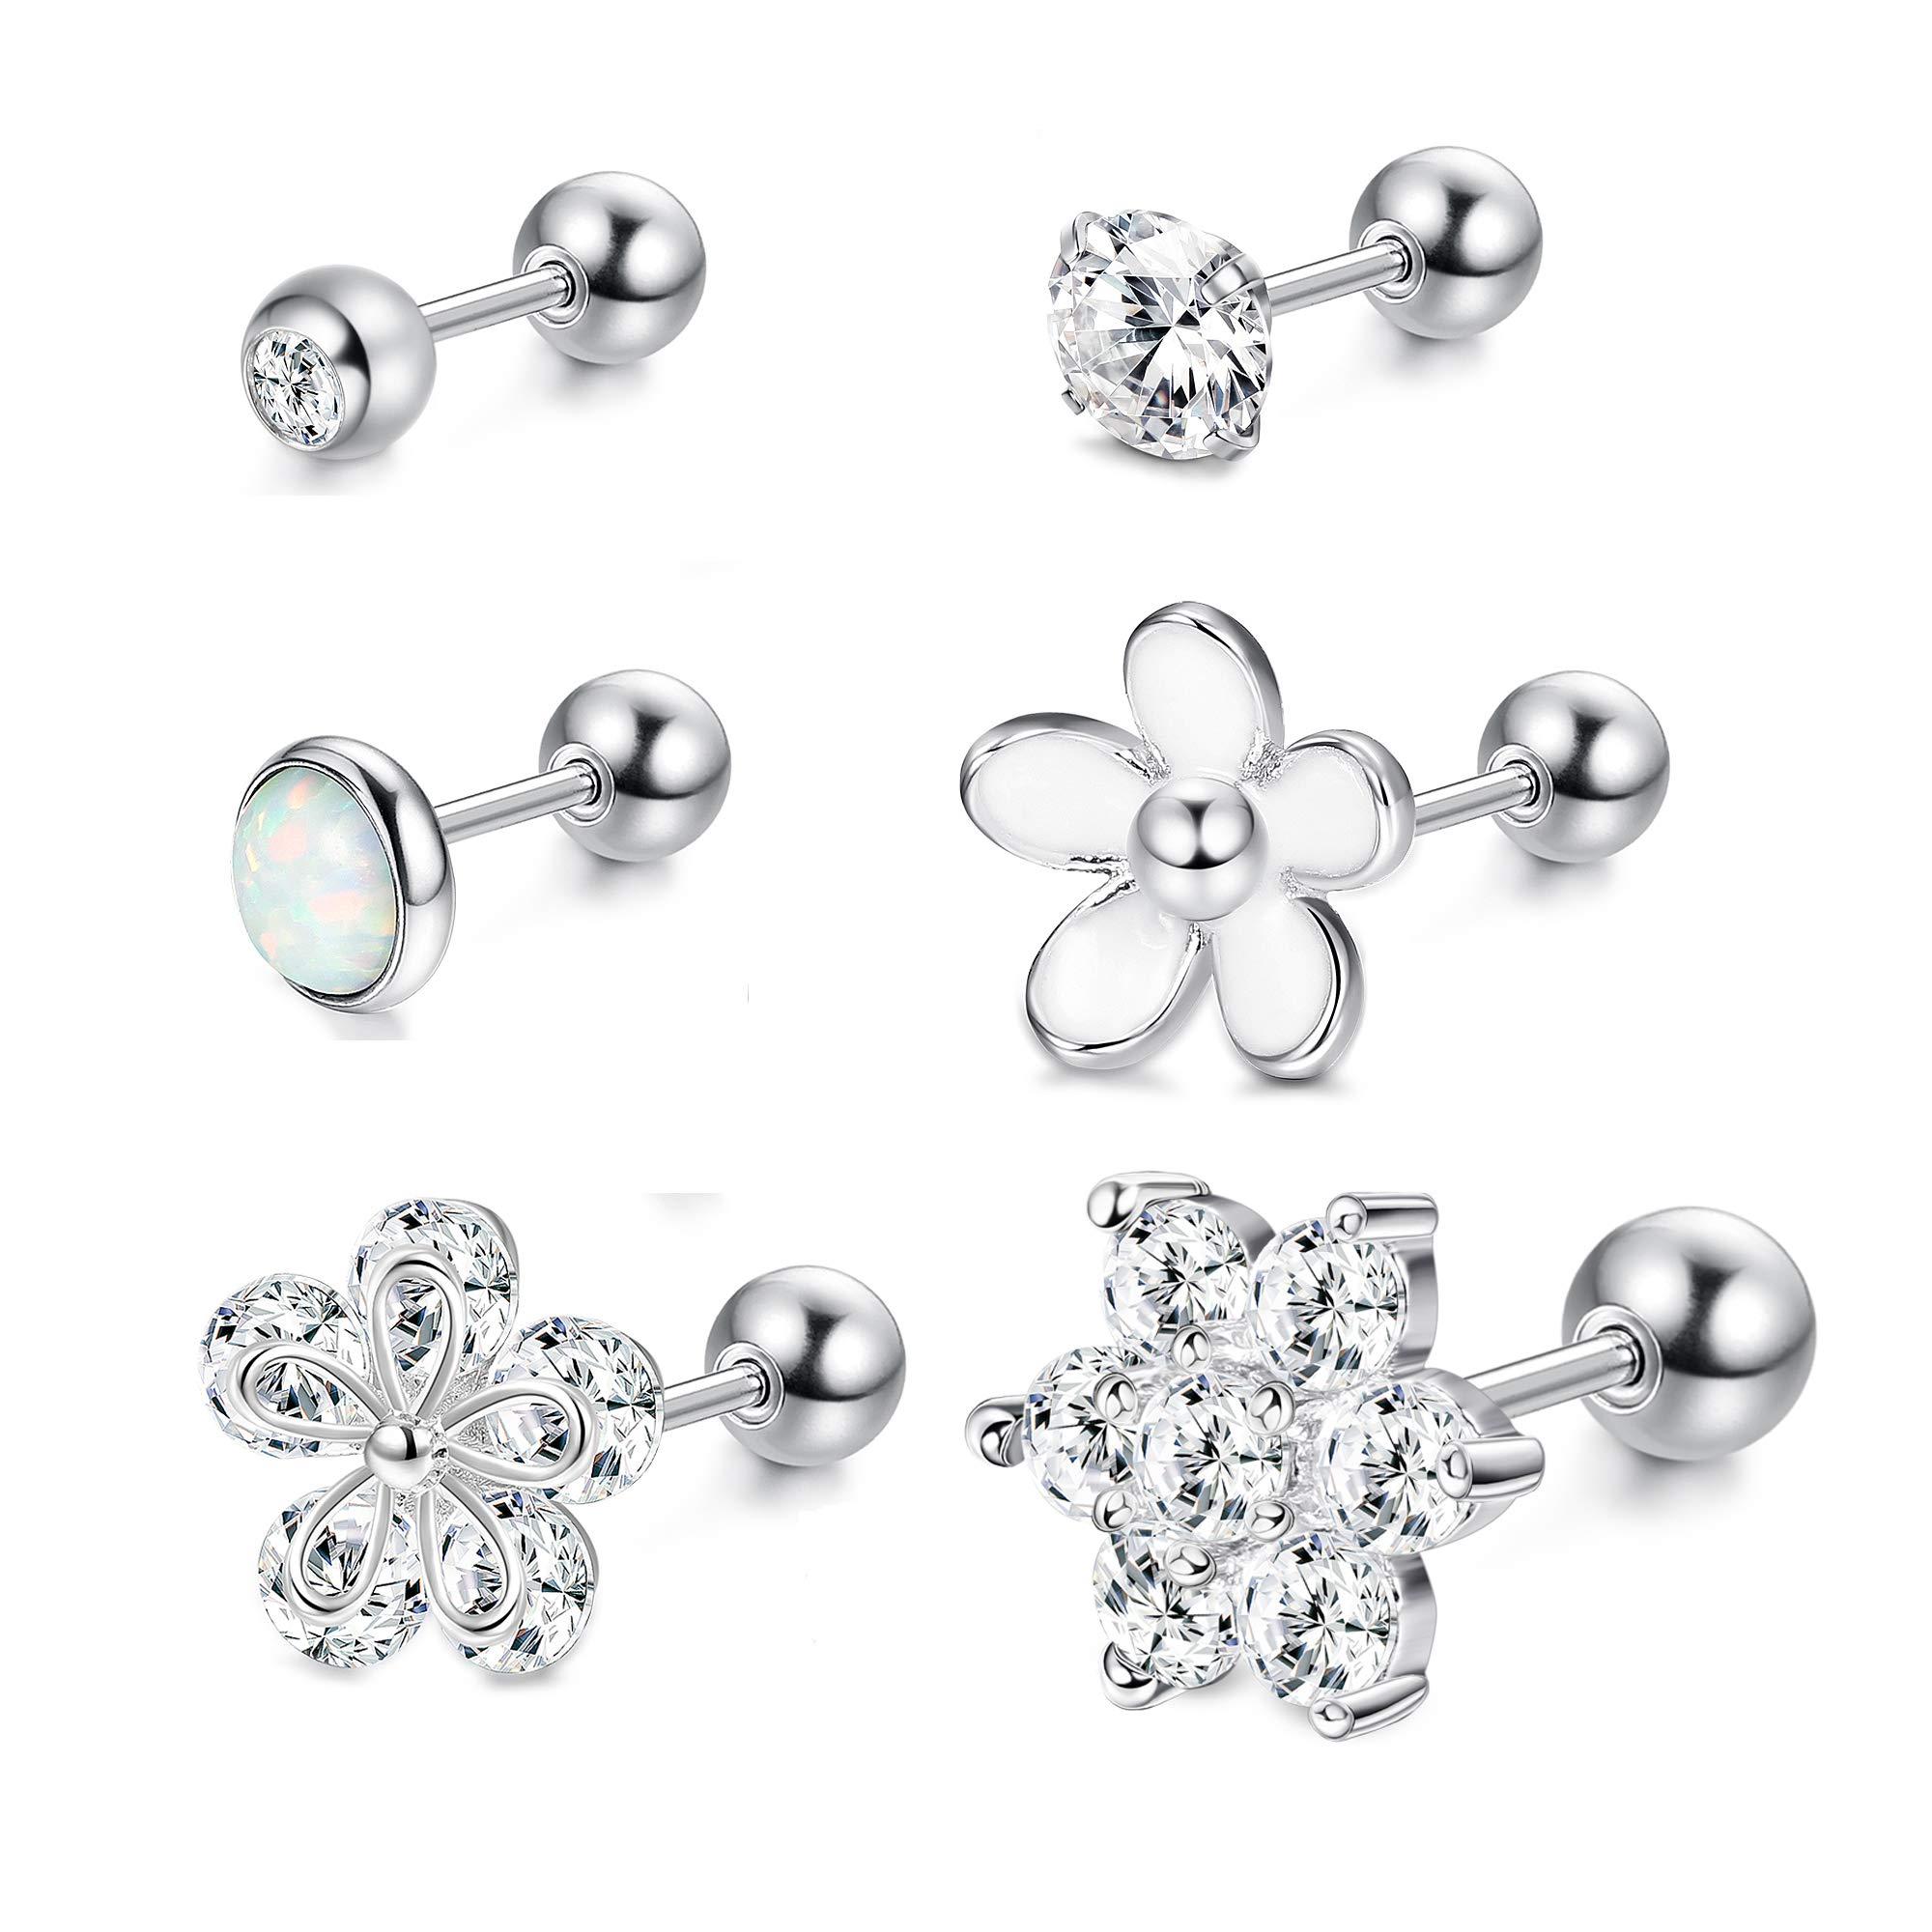 LOYALLOOK 4-6Pcs CZ Barbell Helix Piecing Cartilage Earring Stainless Steel Nose Lip Studs Opal Tragus Body Piercing Jewelry 16G by LOYALLOOK